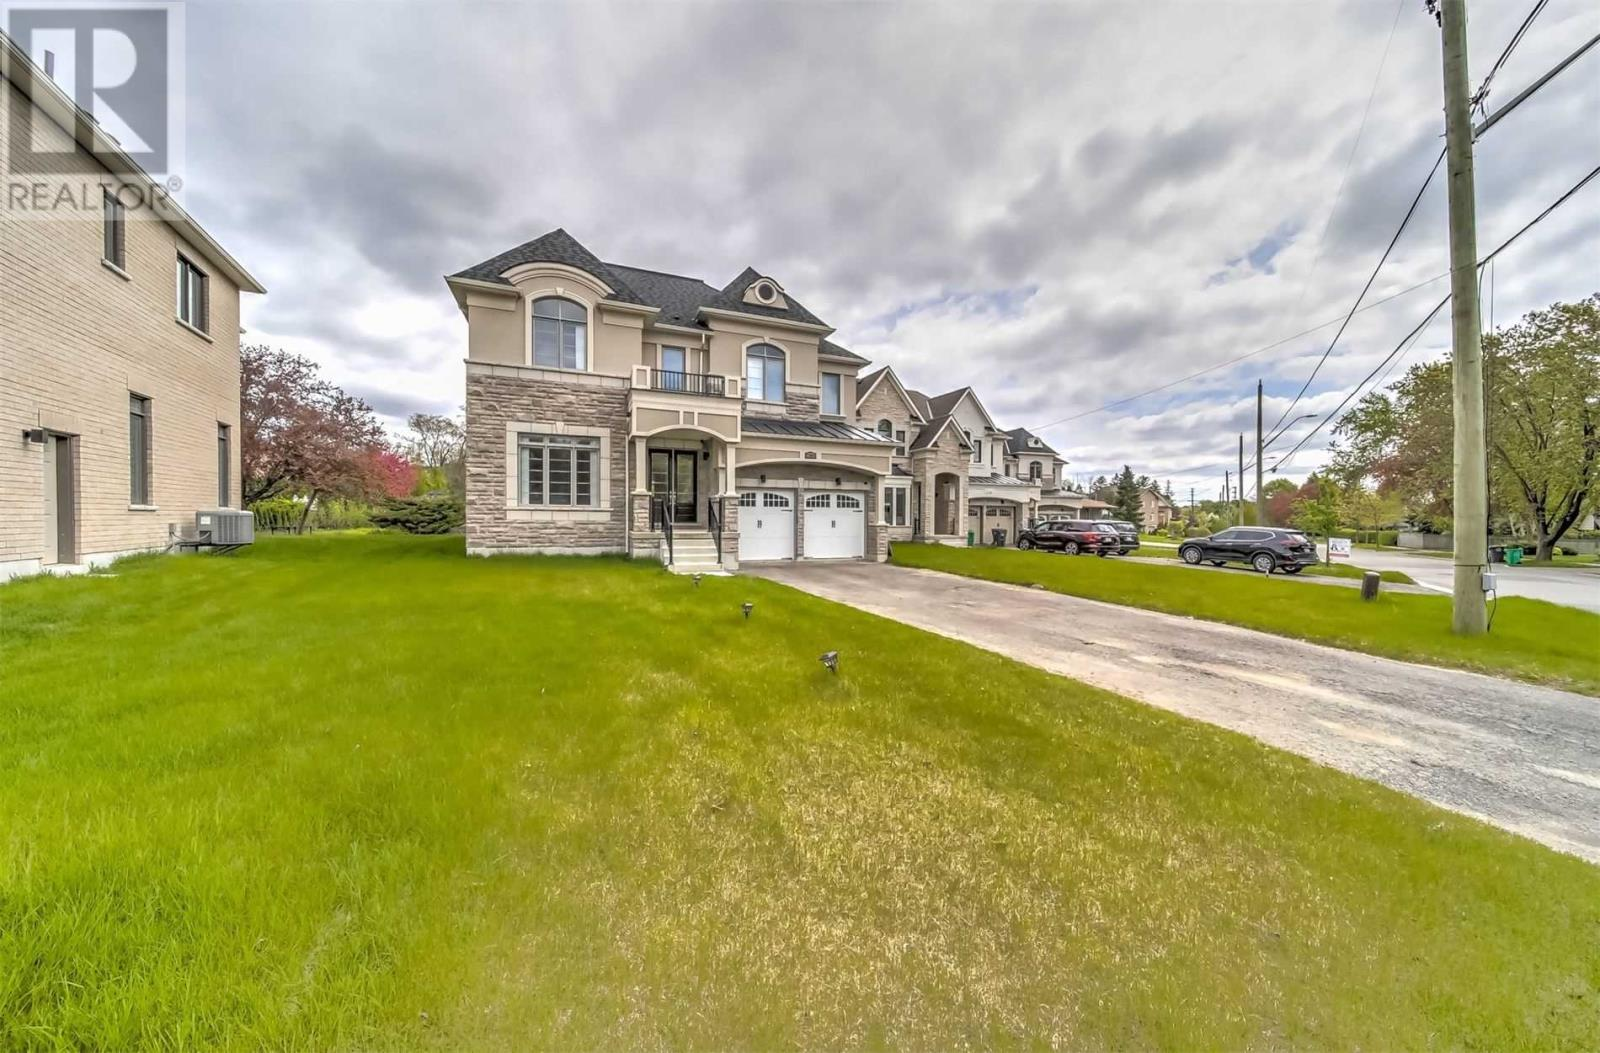 2385 Old Carriage Rd, Mississauga, Ontario  L5C 1Y6 - Photo 2 - W4556703